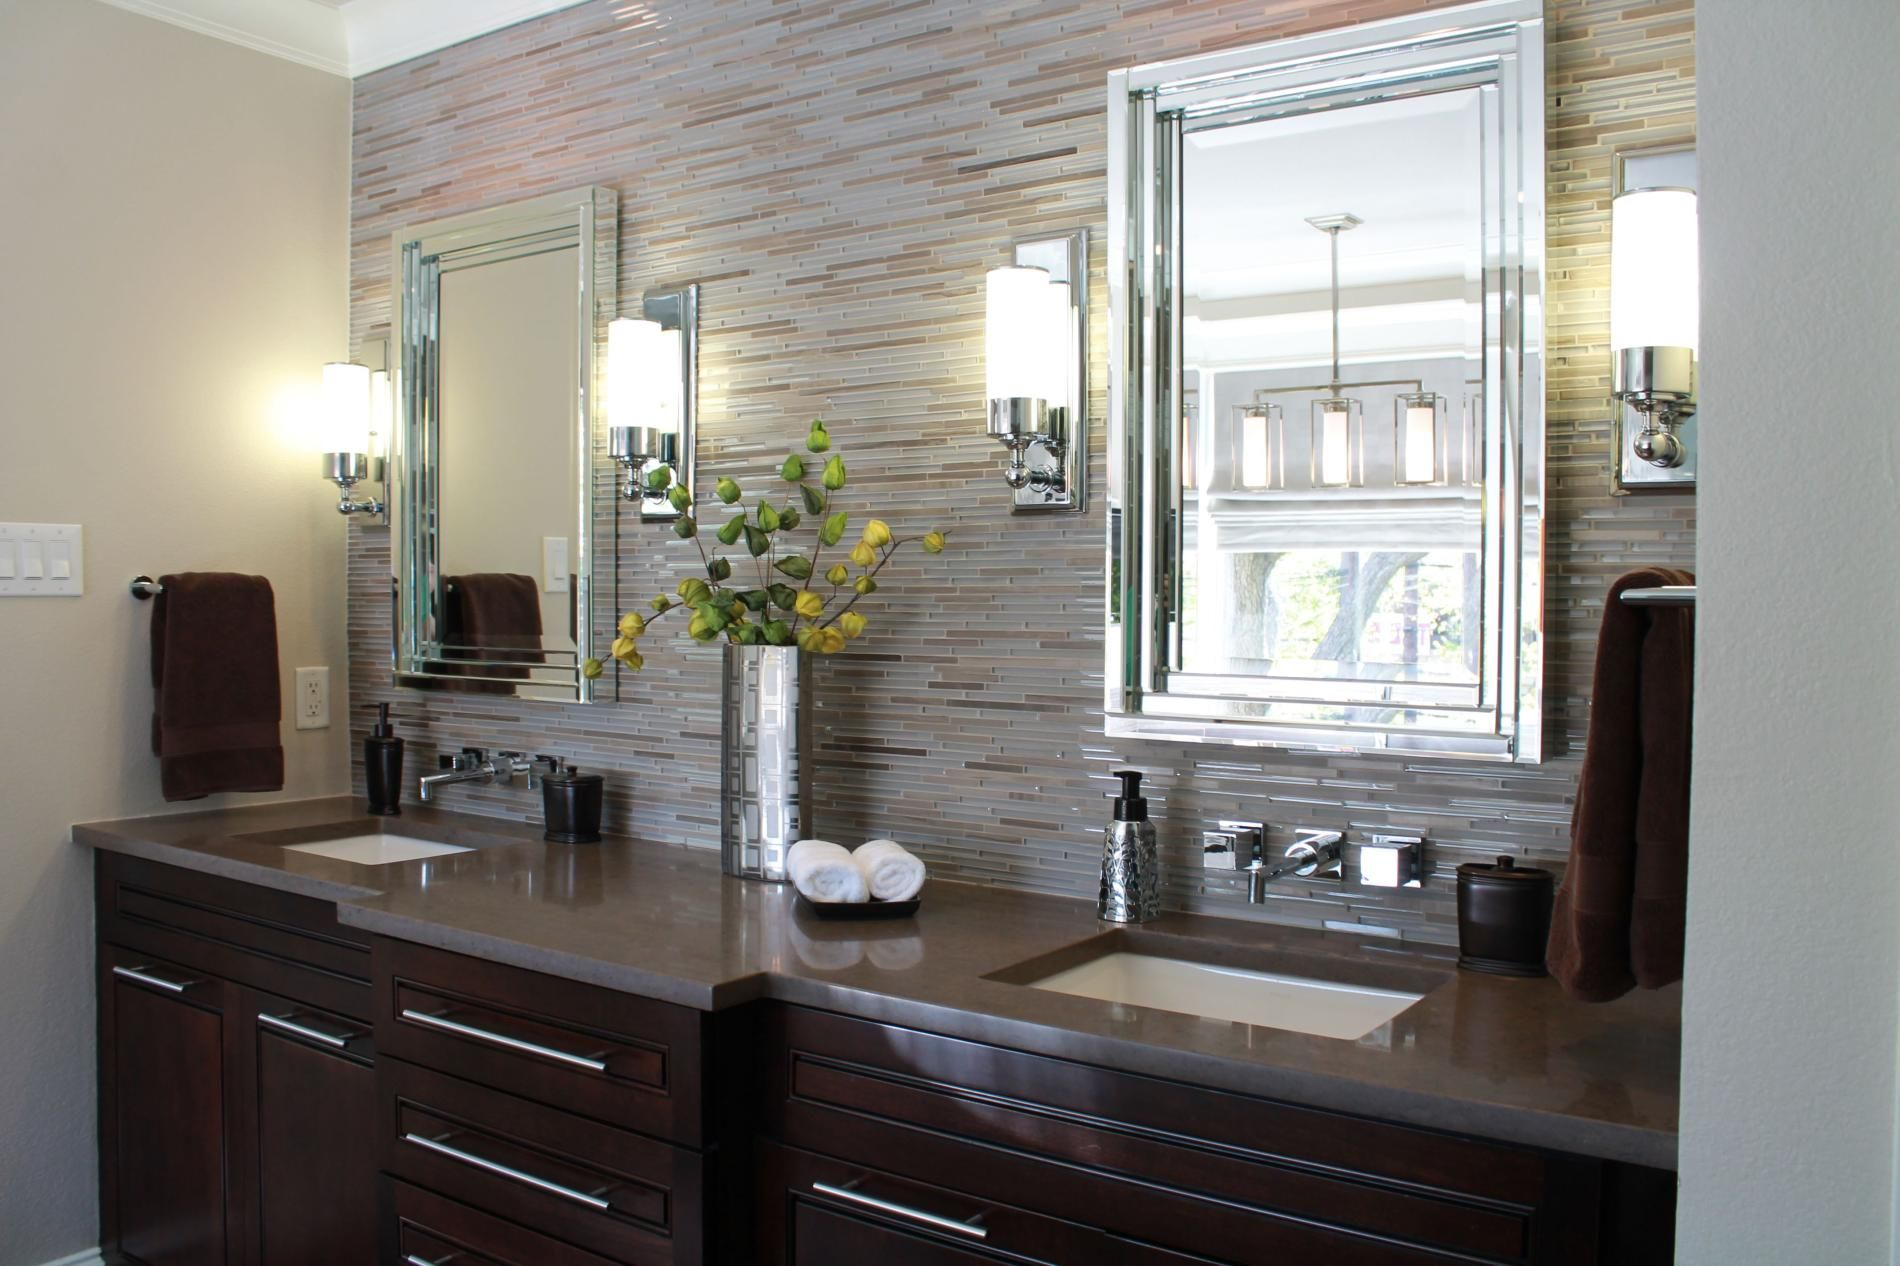 Résultats De Recherche D'images Pour « Foyer Ethanol Salon Prepossessing Wall Sconces Bathroom Review